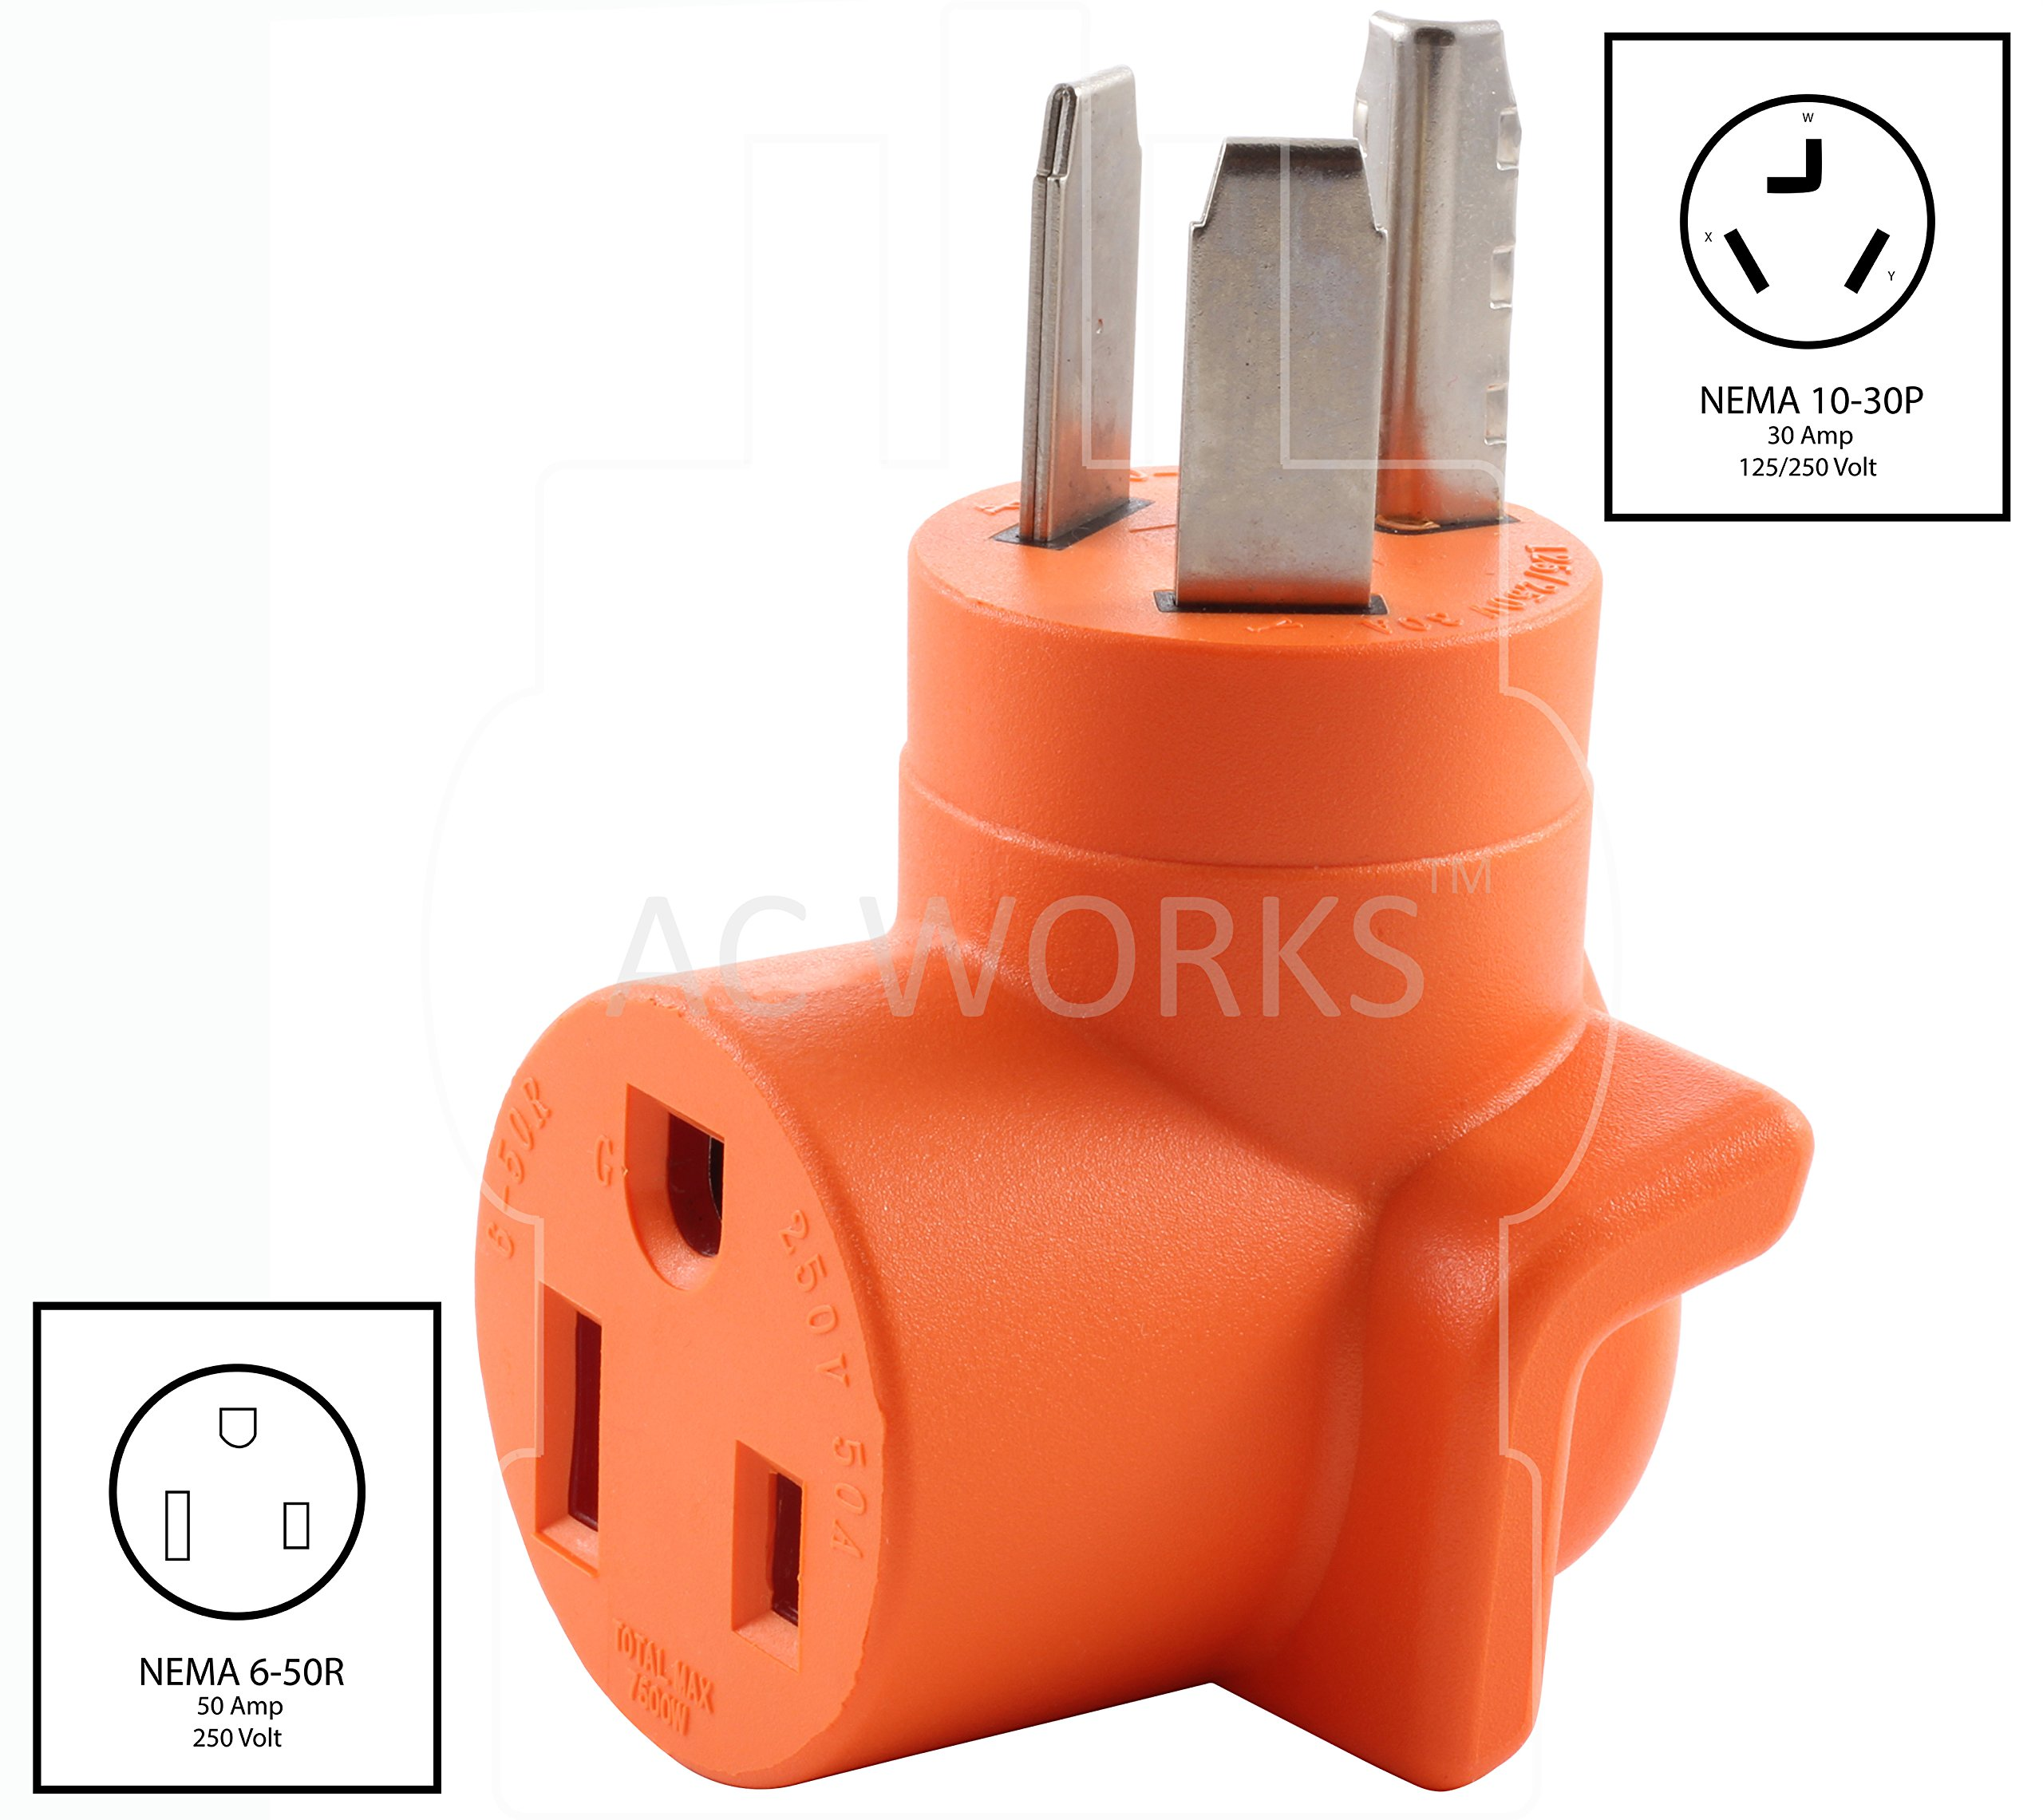 AC WORKS [WD1030650] NEMA 10-30 3-Prong Dryer Plug to 6-50 Welder Adapter by AC WORKS (Image #2)